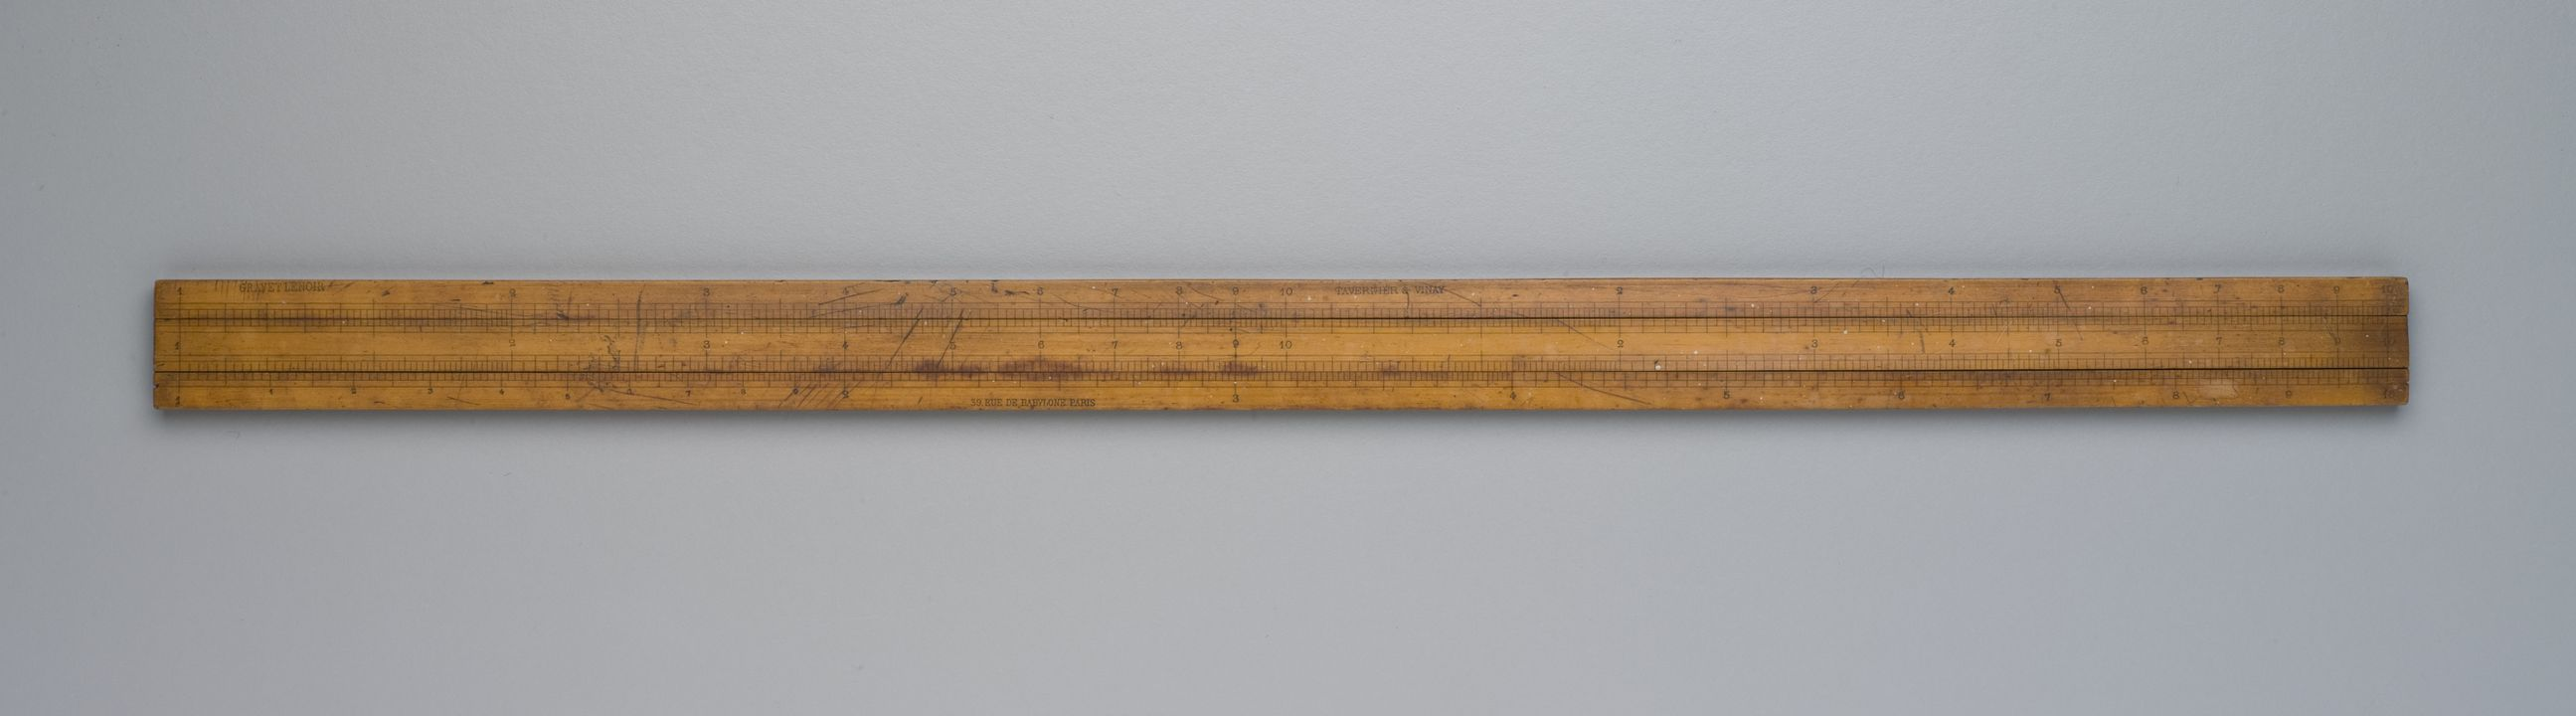 2010/1/410 Slide rule, Soho type, with single-sided closed frame and double-sided slide, laminated wood, designed for Boulton and Watt, Soho, Birmingham, England, 1779, made by Gravet Lenoir's successor company Tavernier and Vinay, Paris, France, 1870-1882. Click to enlarge.